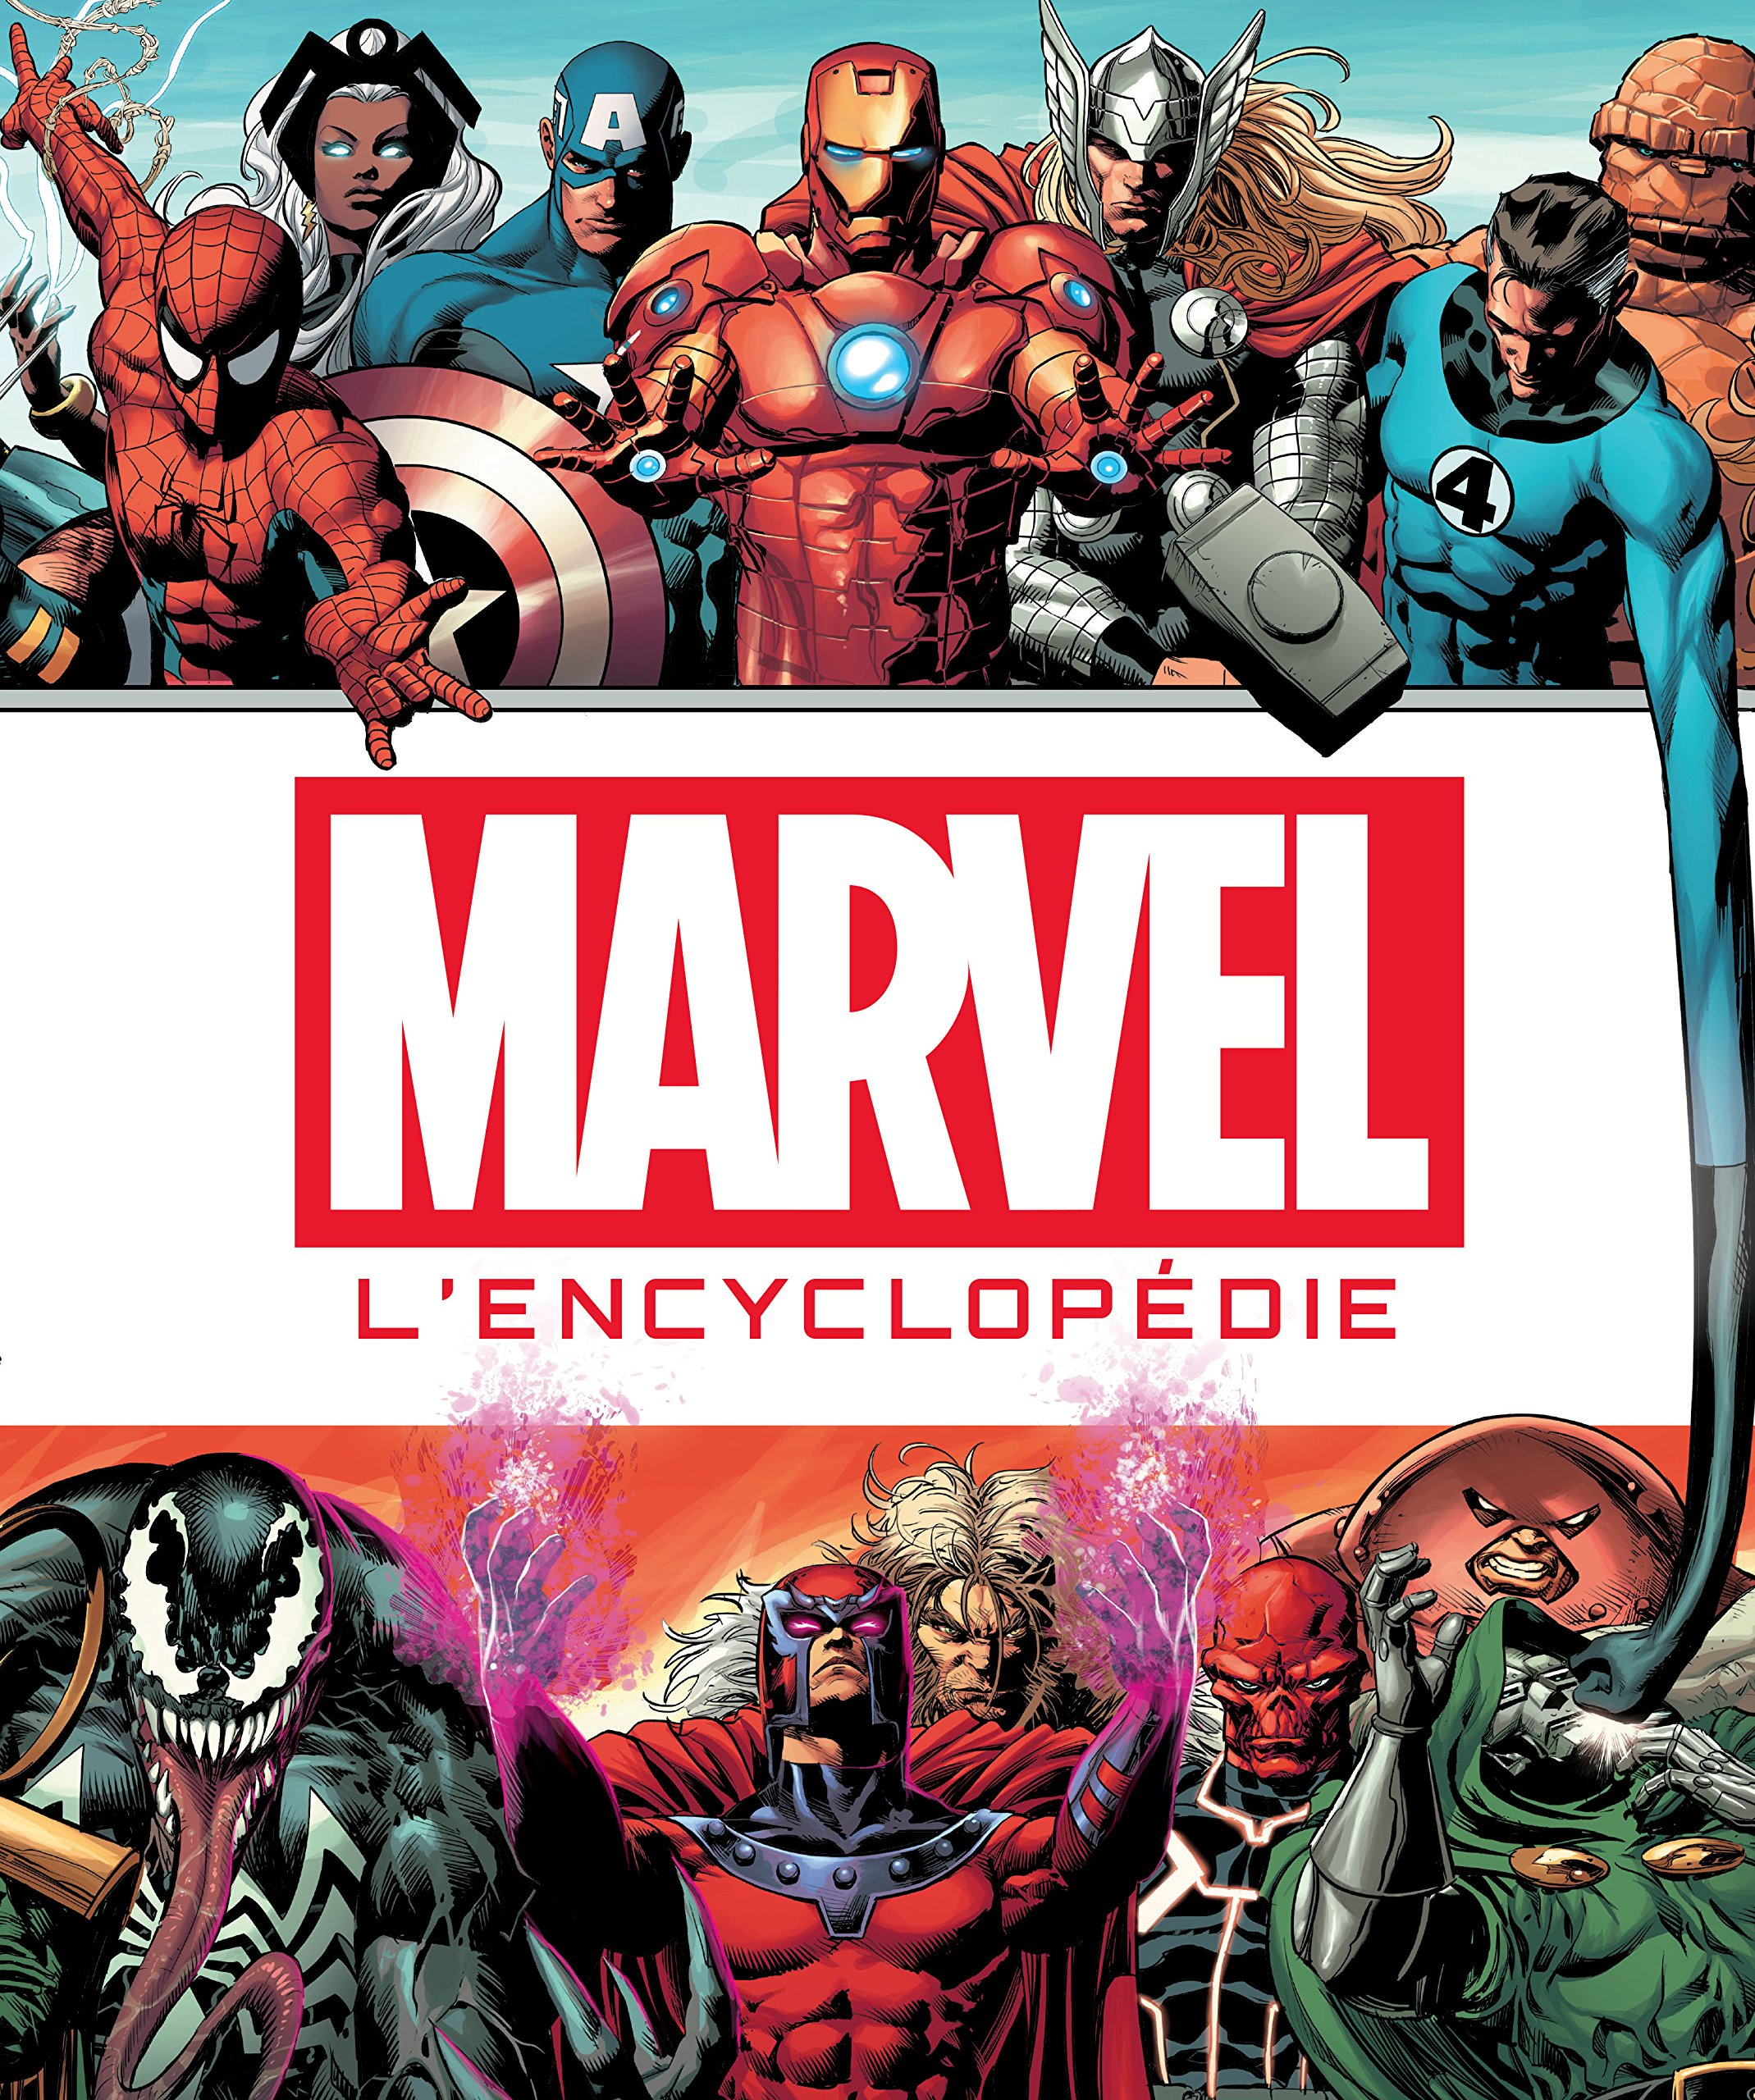 Marvel l'encyclopédie